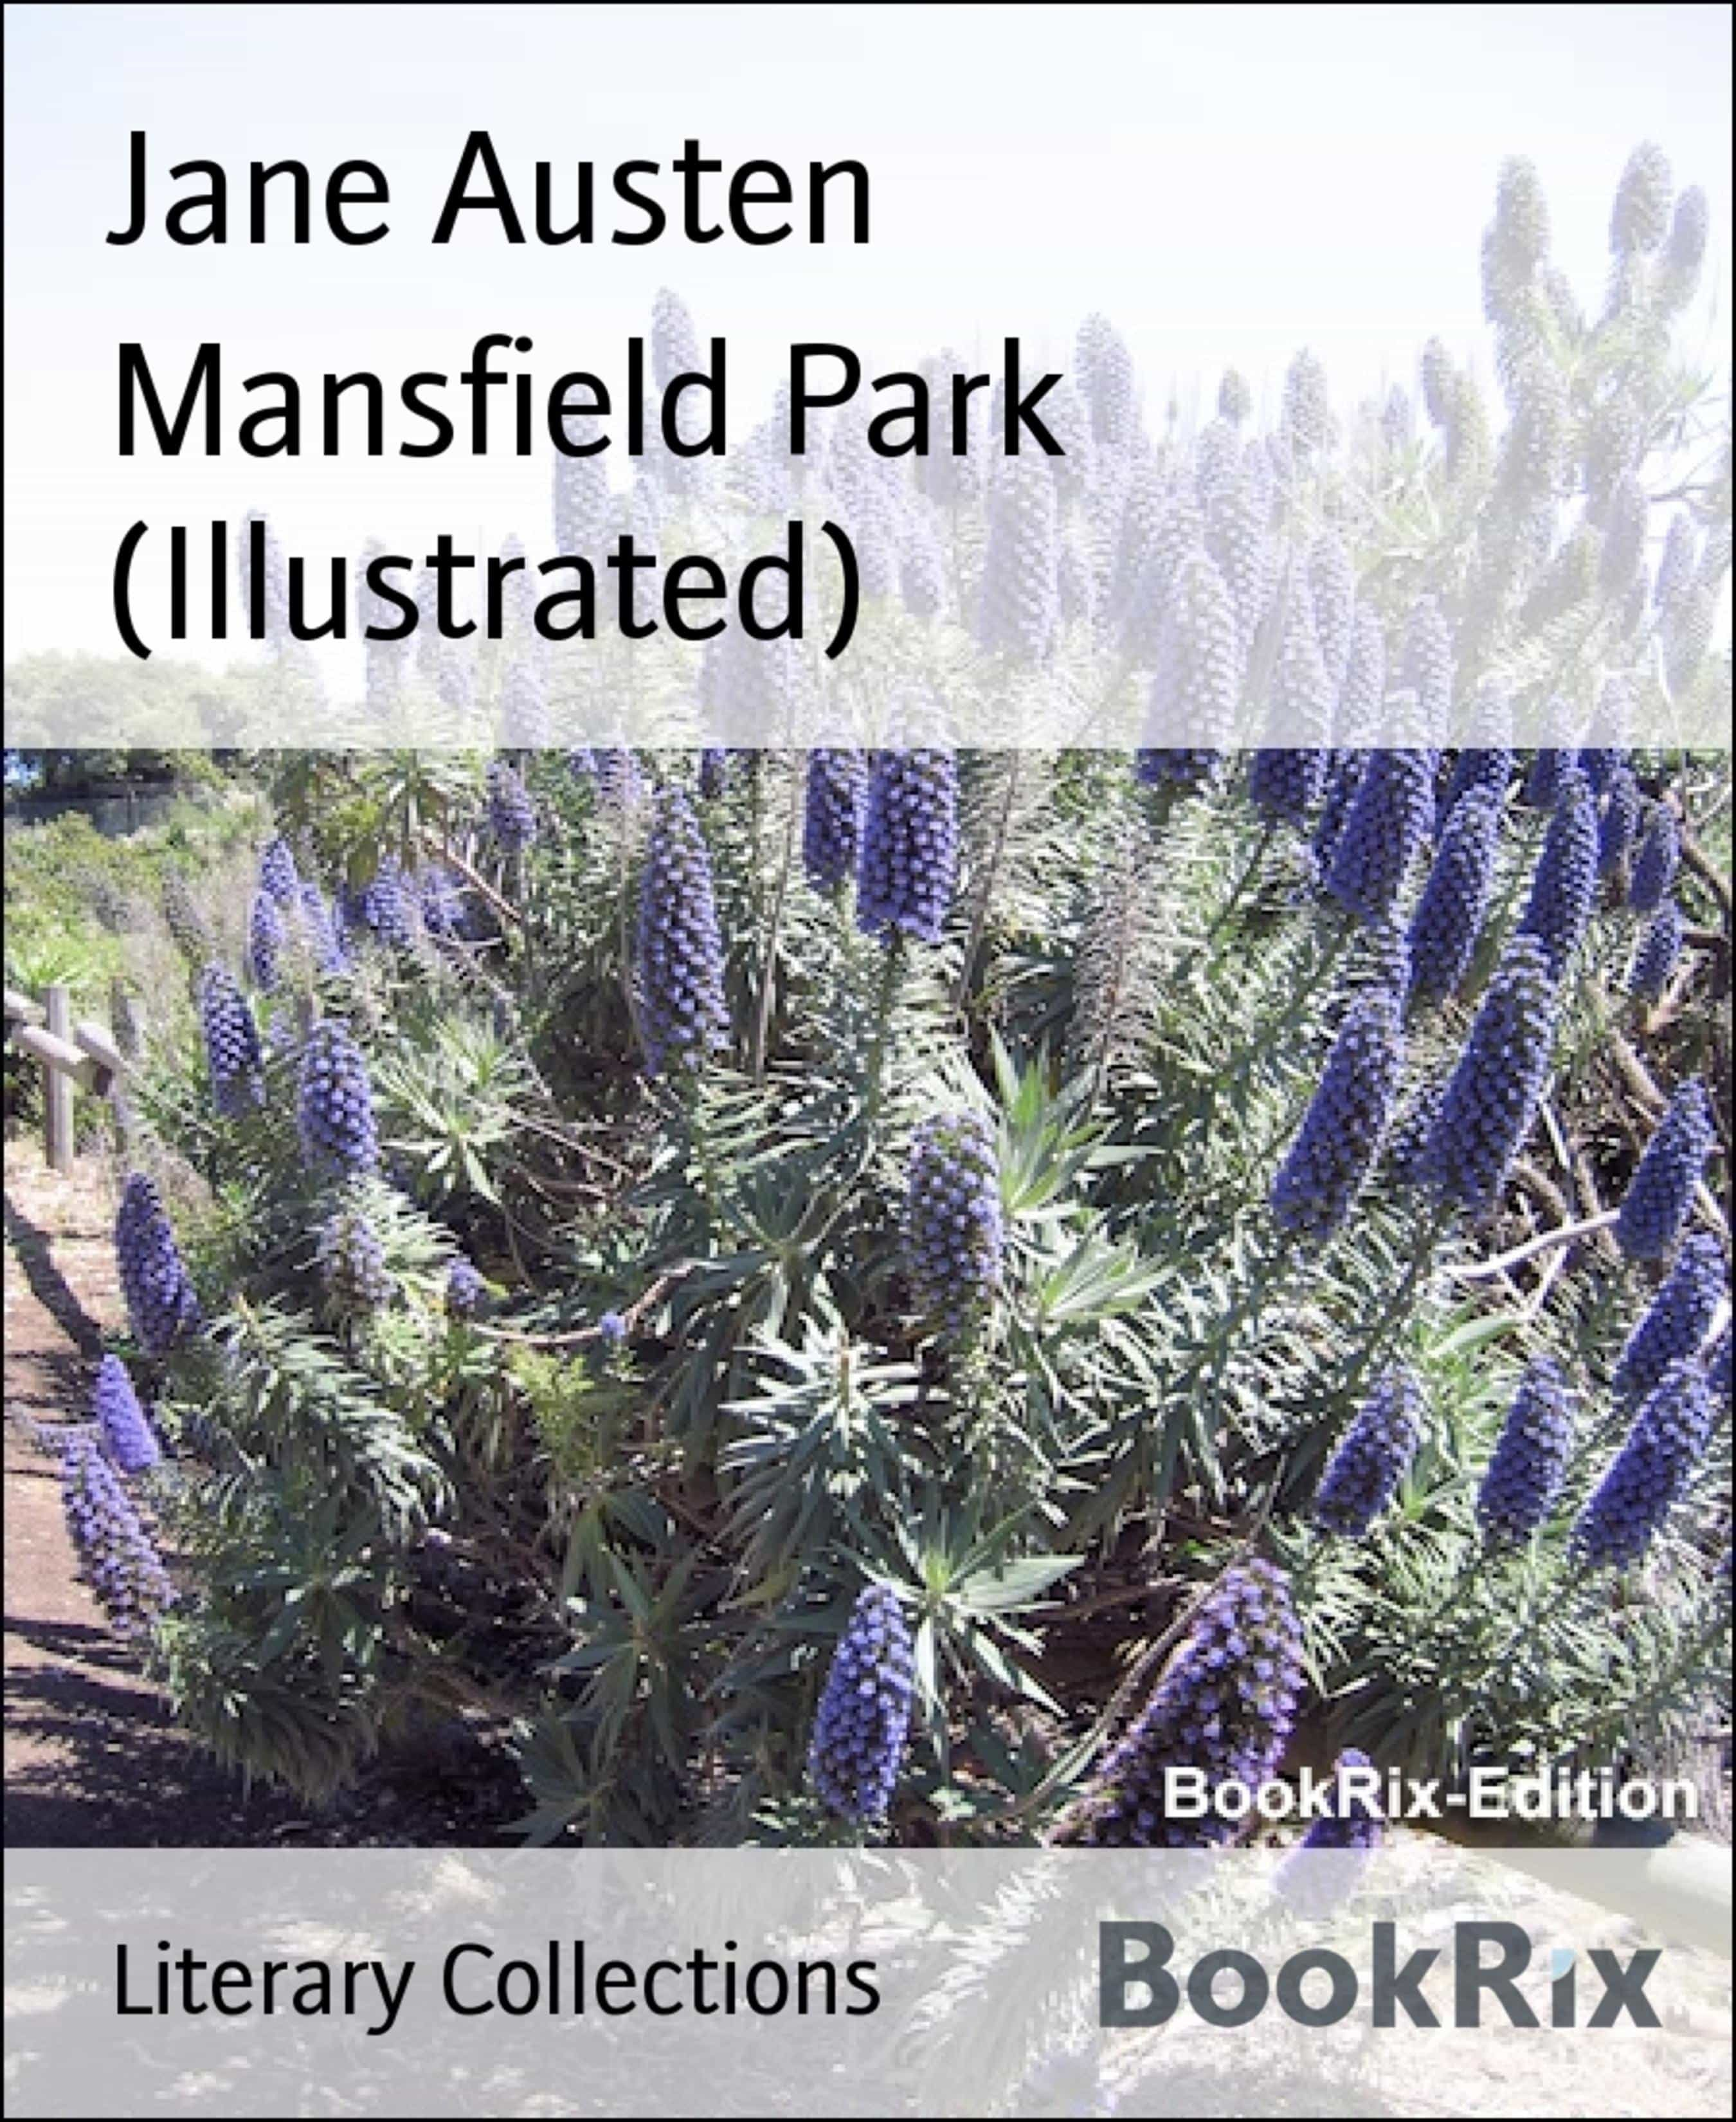 MANSFIELD PARK (ILLUSTRATED)